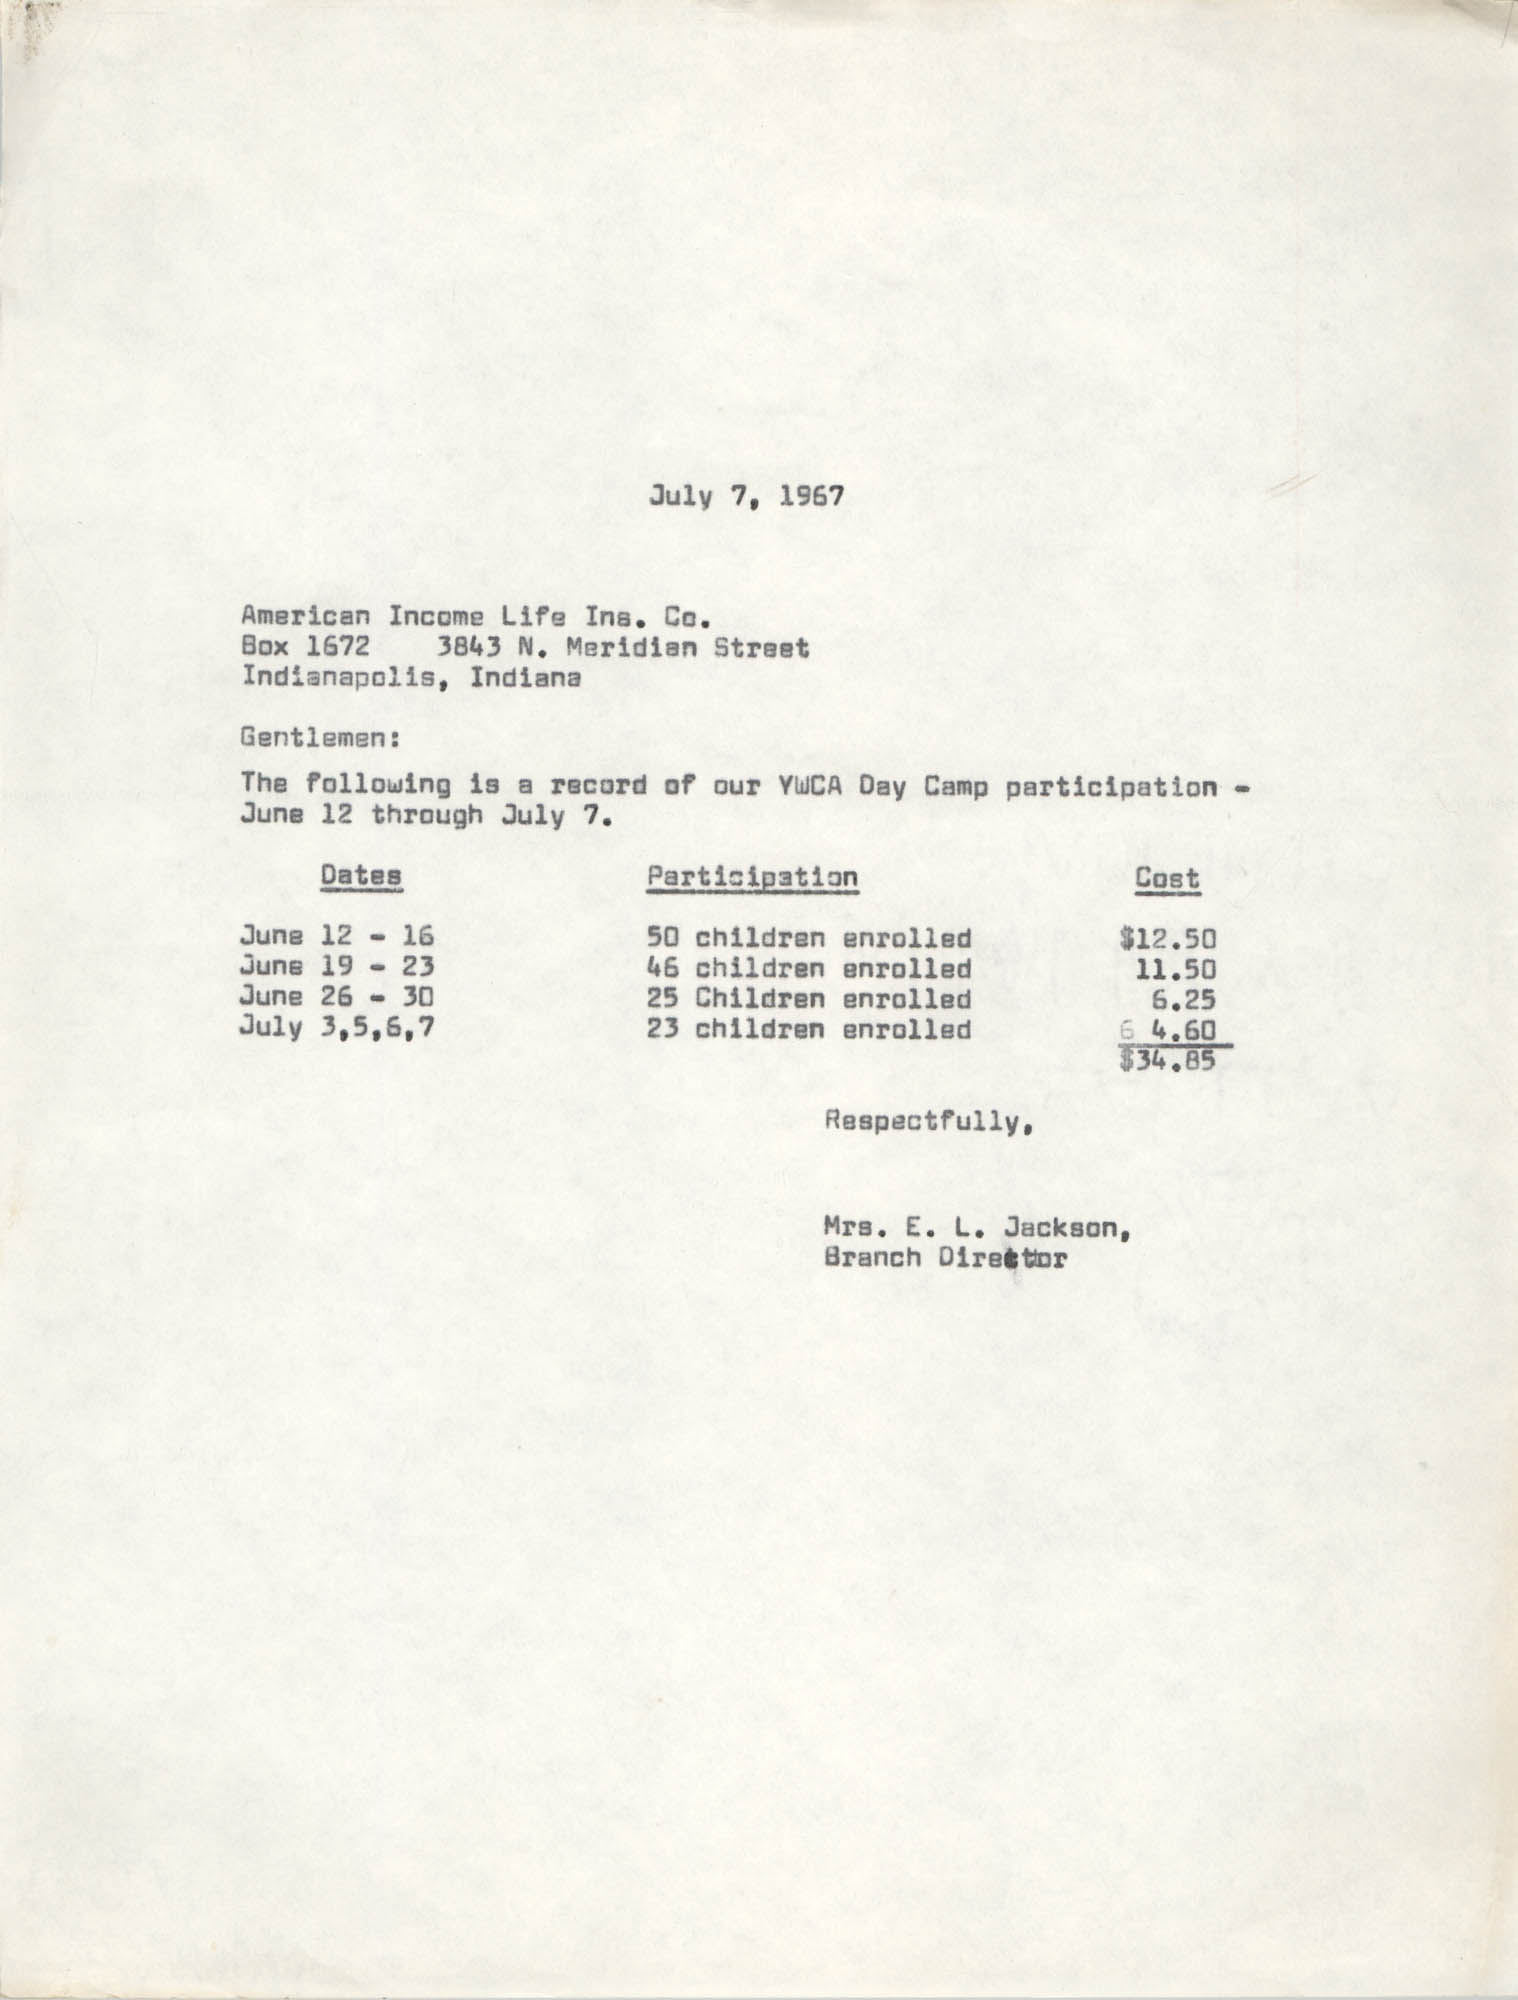 Letter from Christine O. Jackson to American Income Life Insurance Company, July 7, 1967